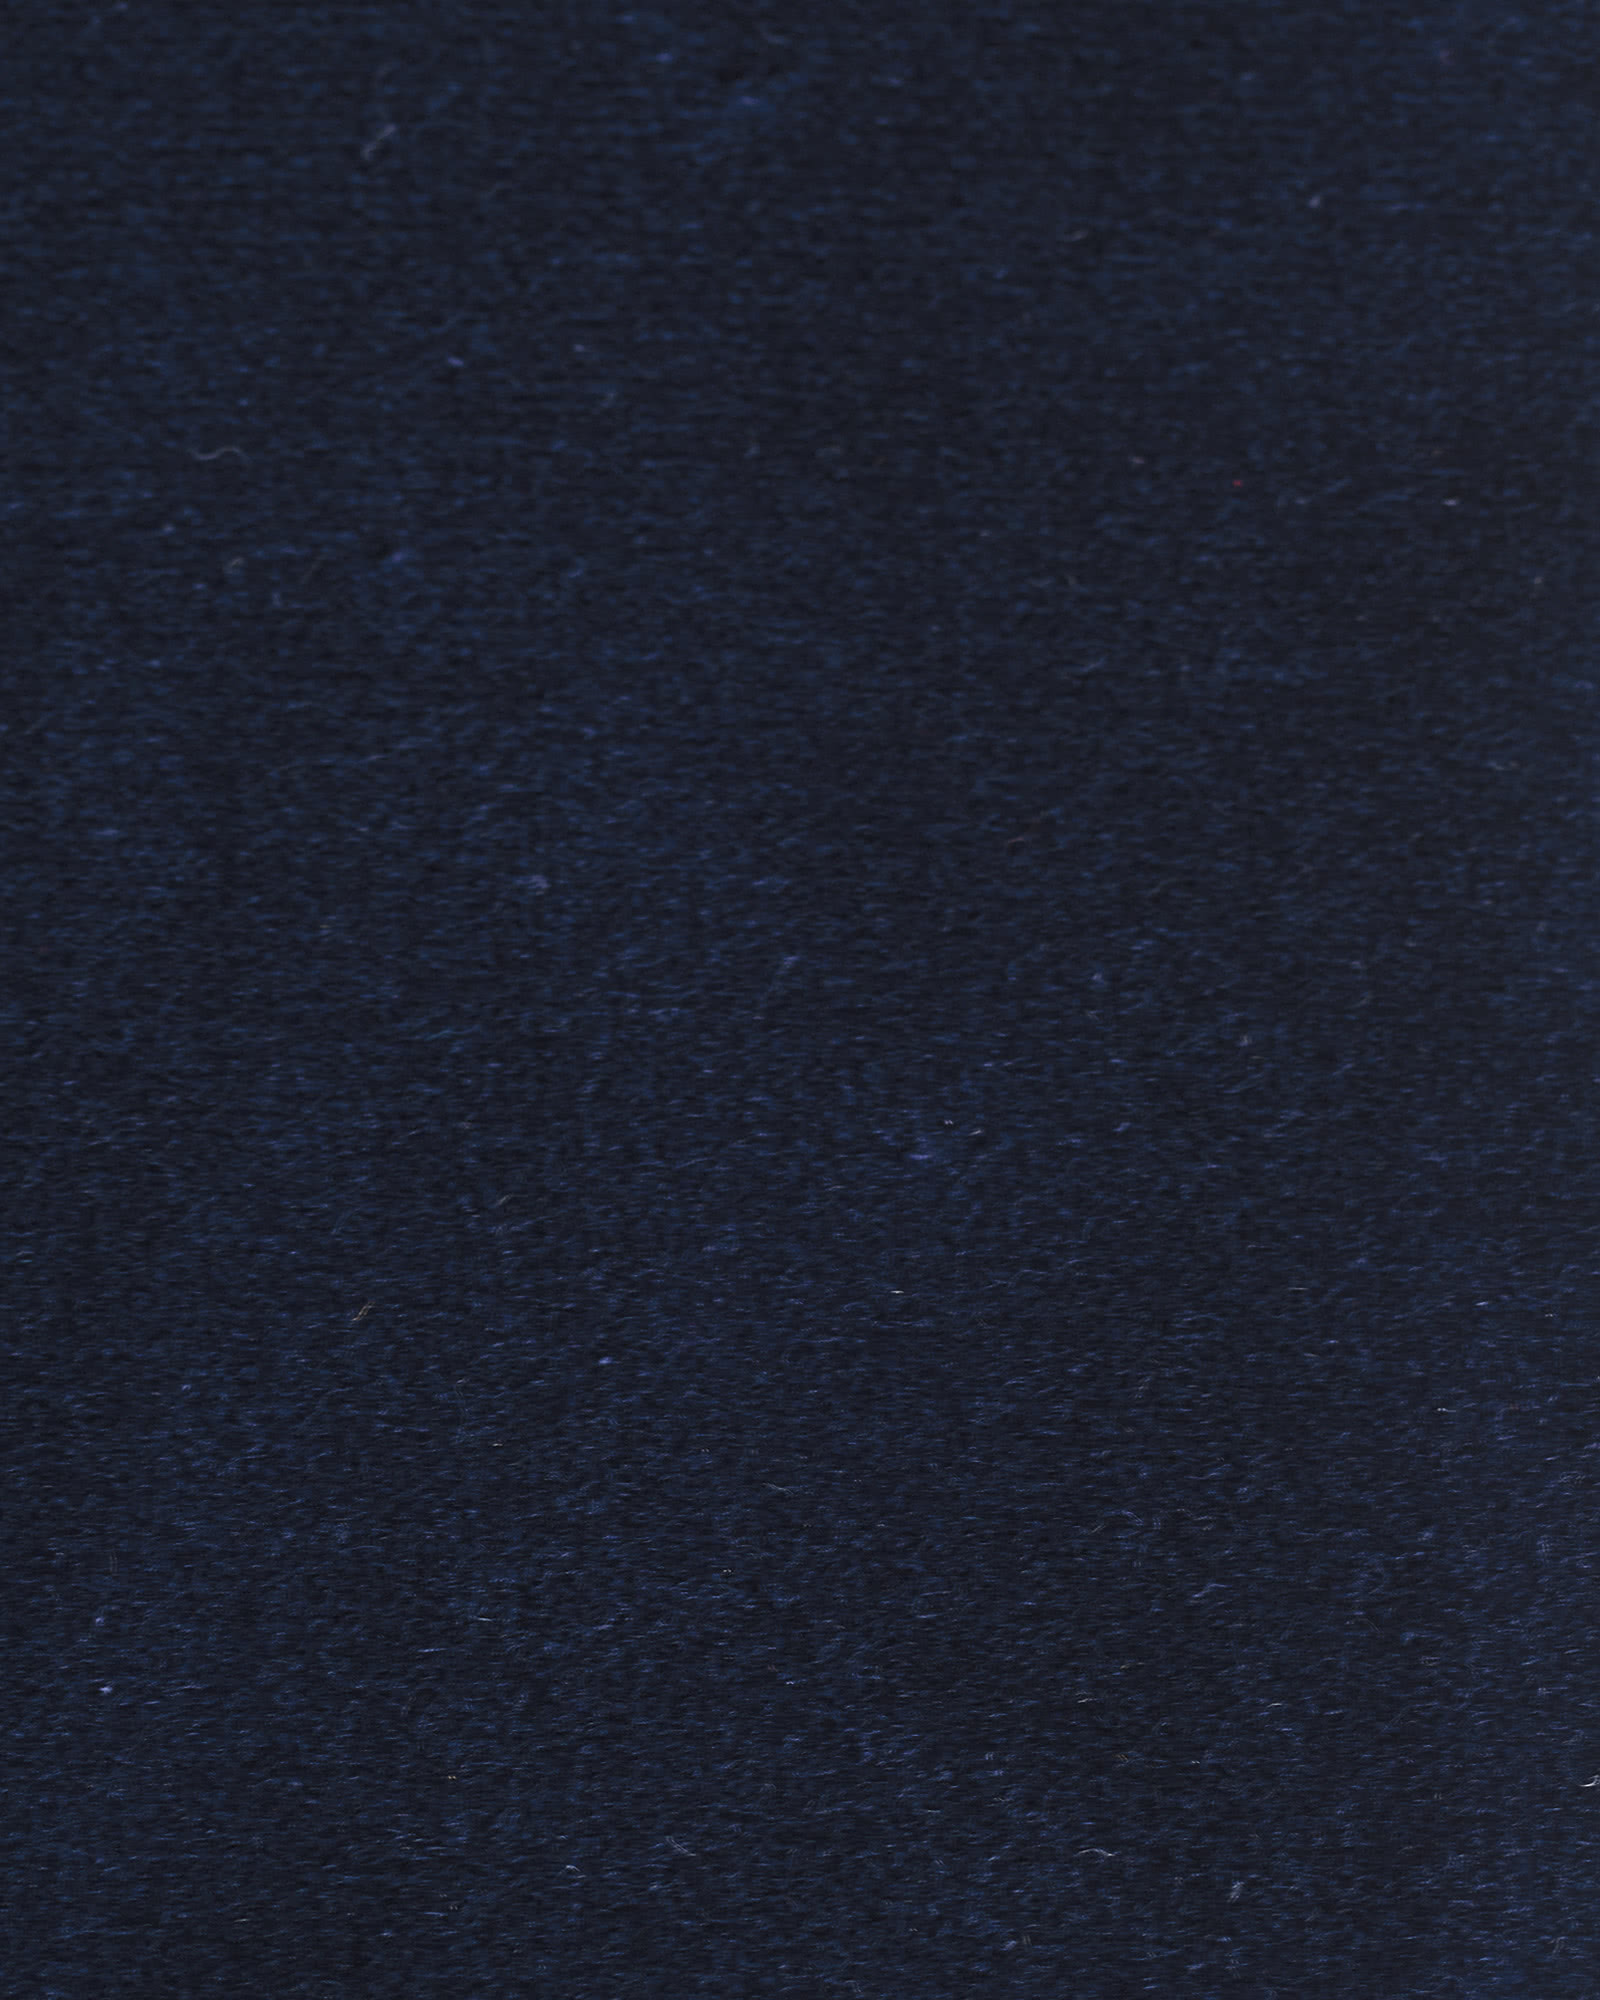 Fabric by the Yard – Cotton Velvet Fabric, Midnight